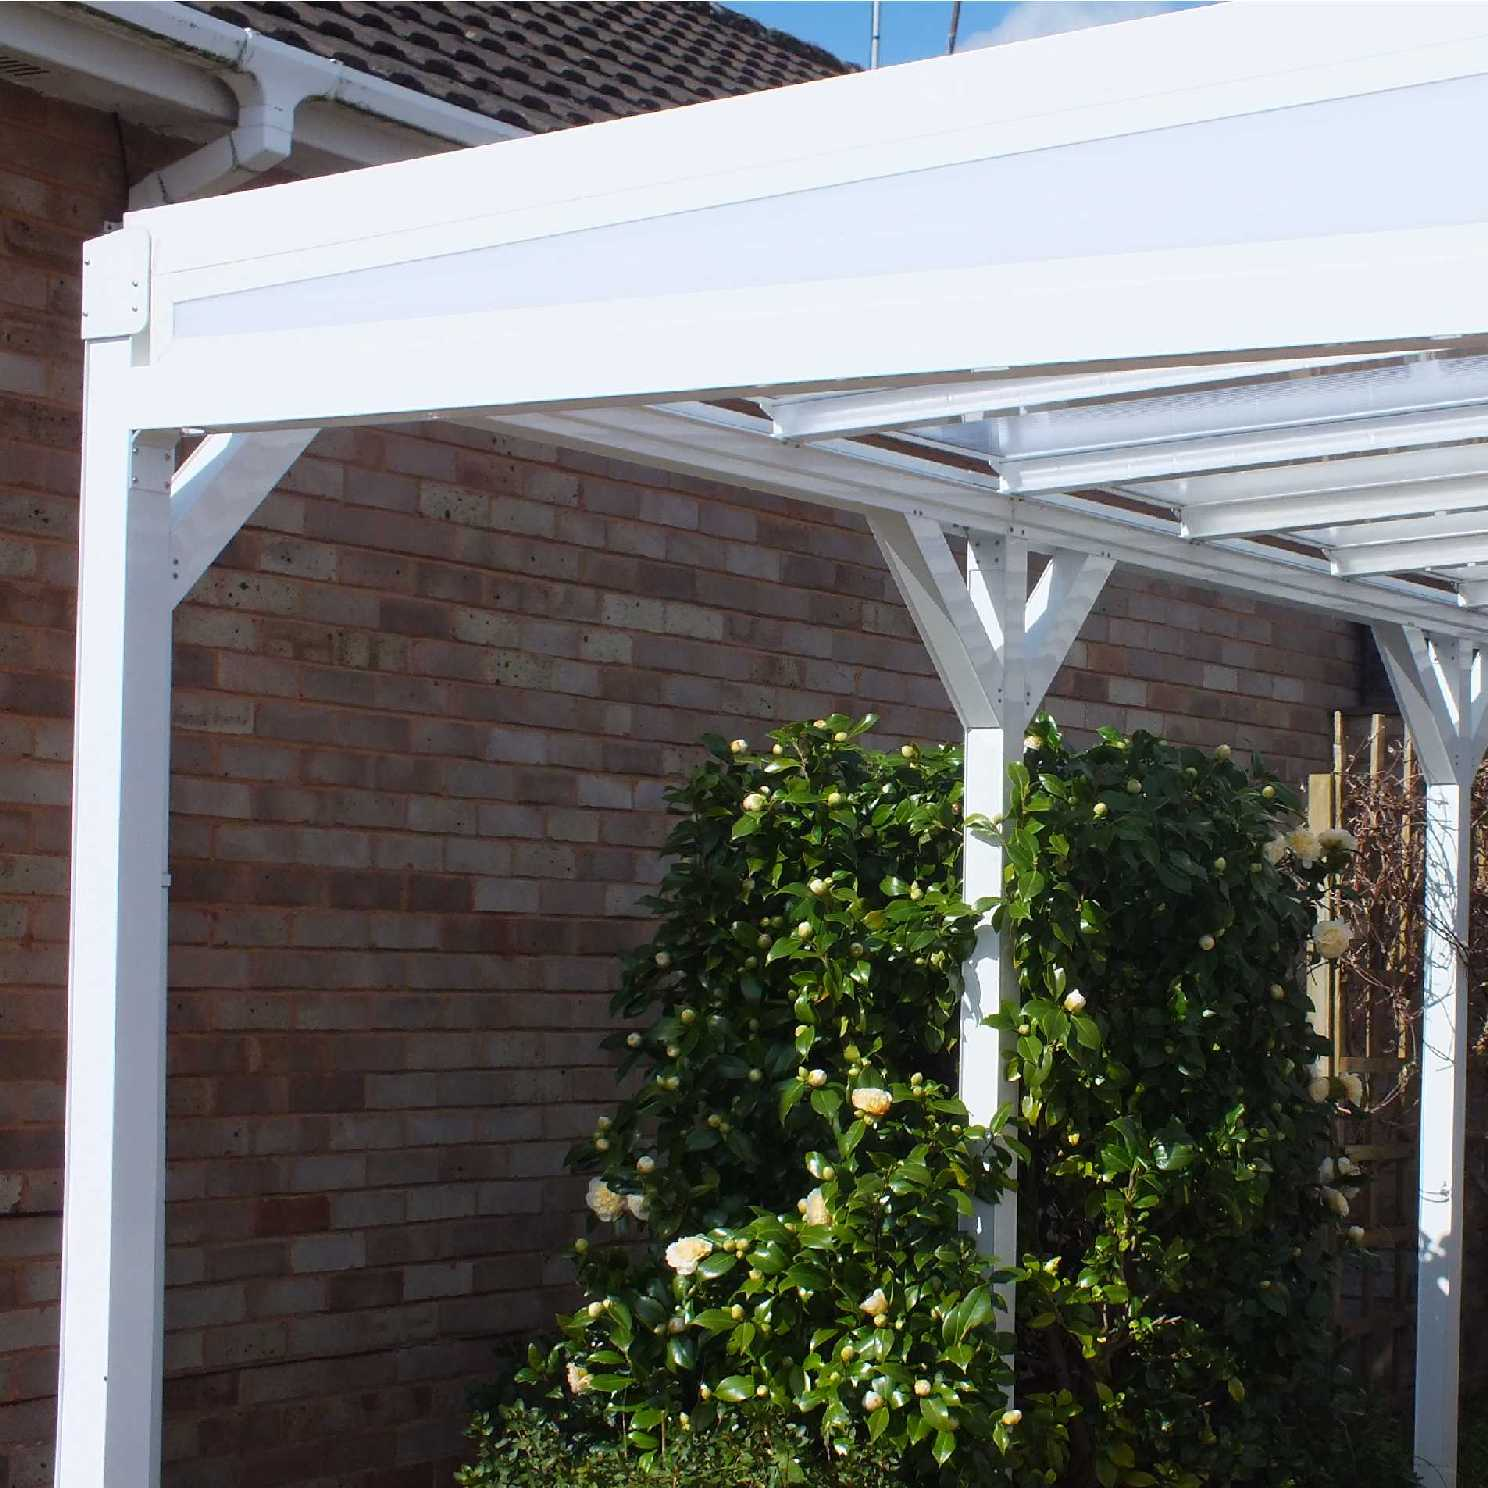 Omega Smart Lean-To Canopy with 16mm Polycarbonate Glazing - 9.9m (W) x 3.5m (P), (5) Supporting Posts from Omega Build